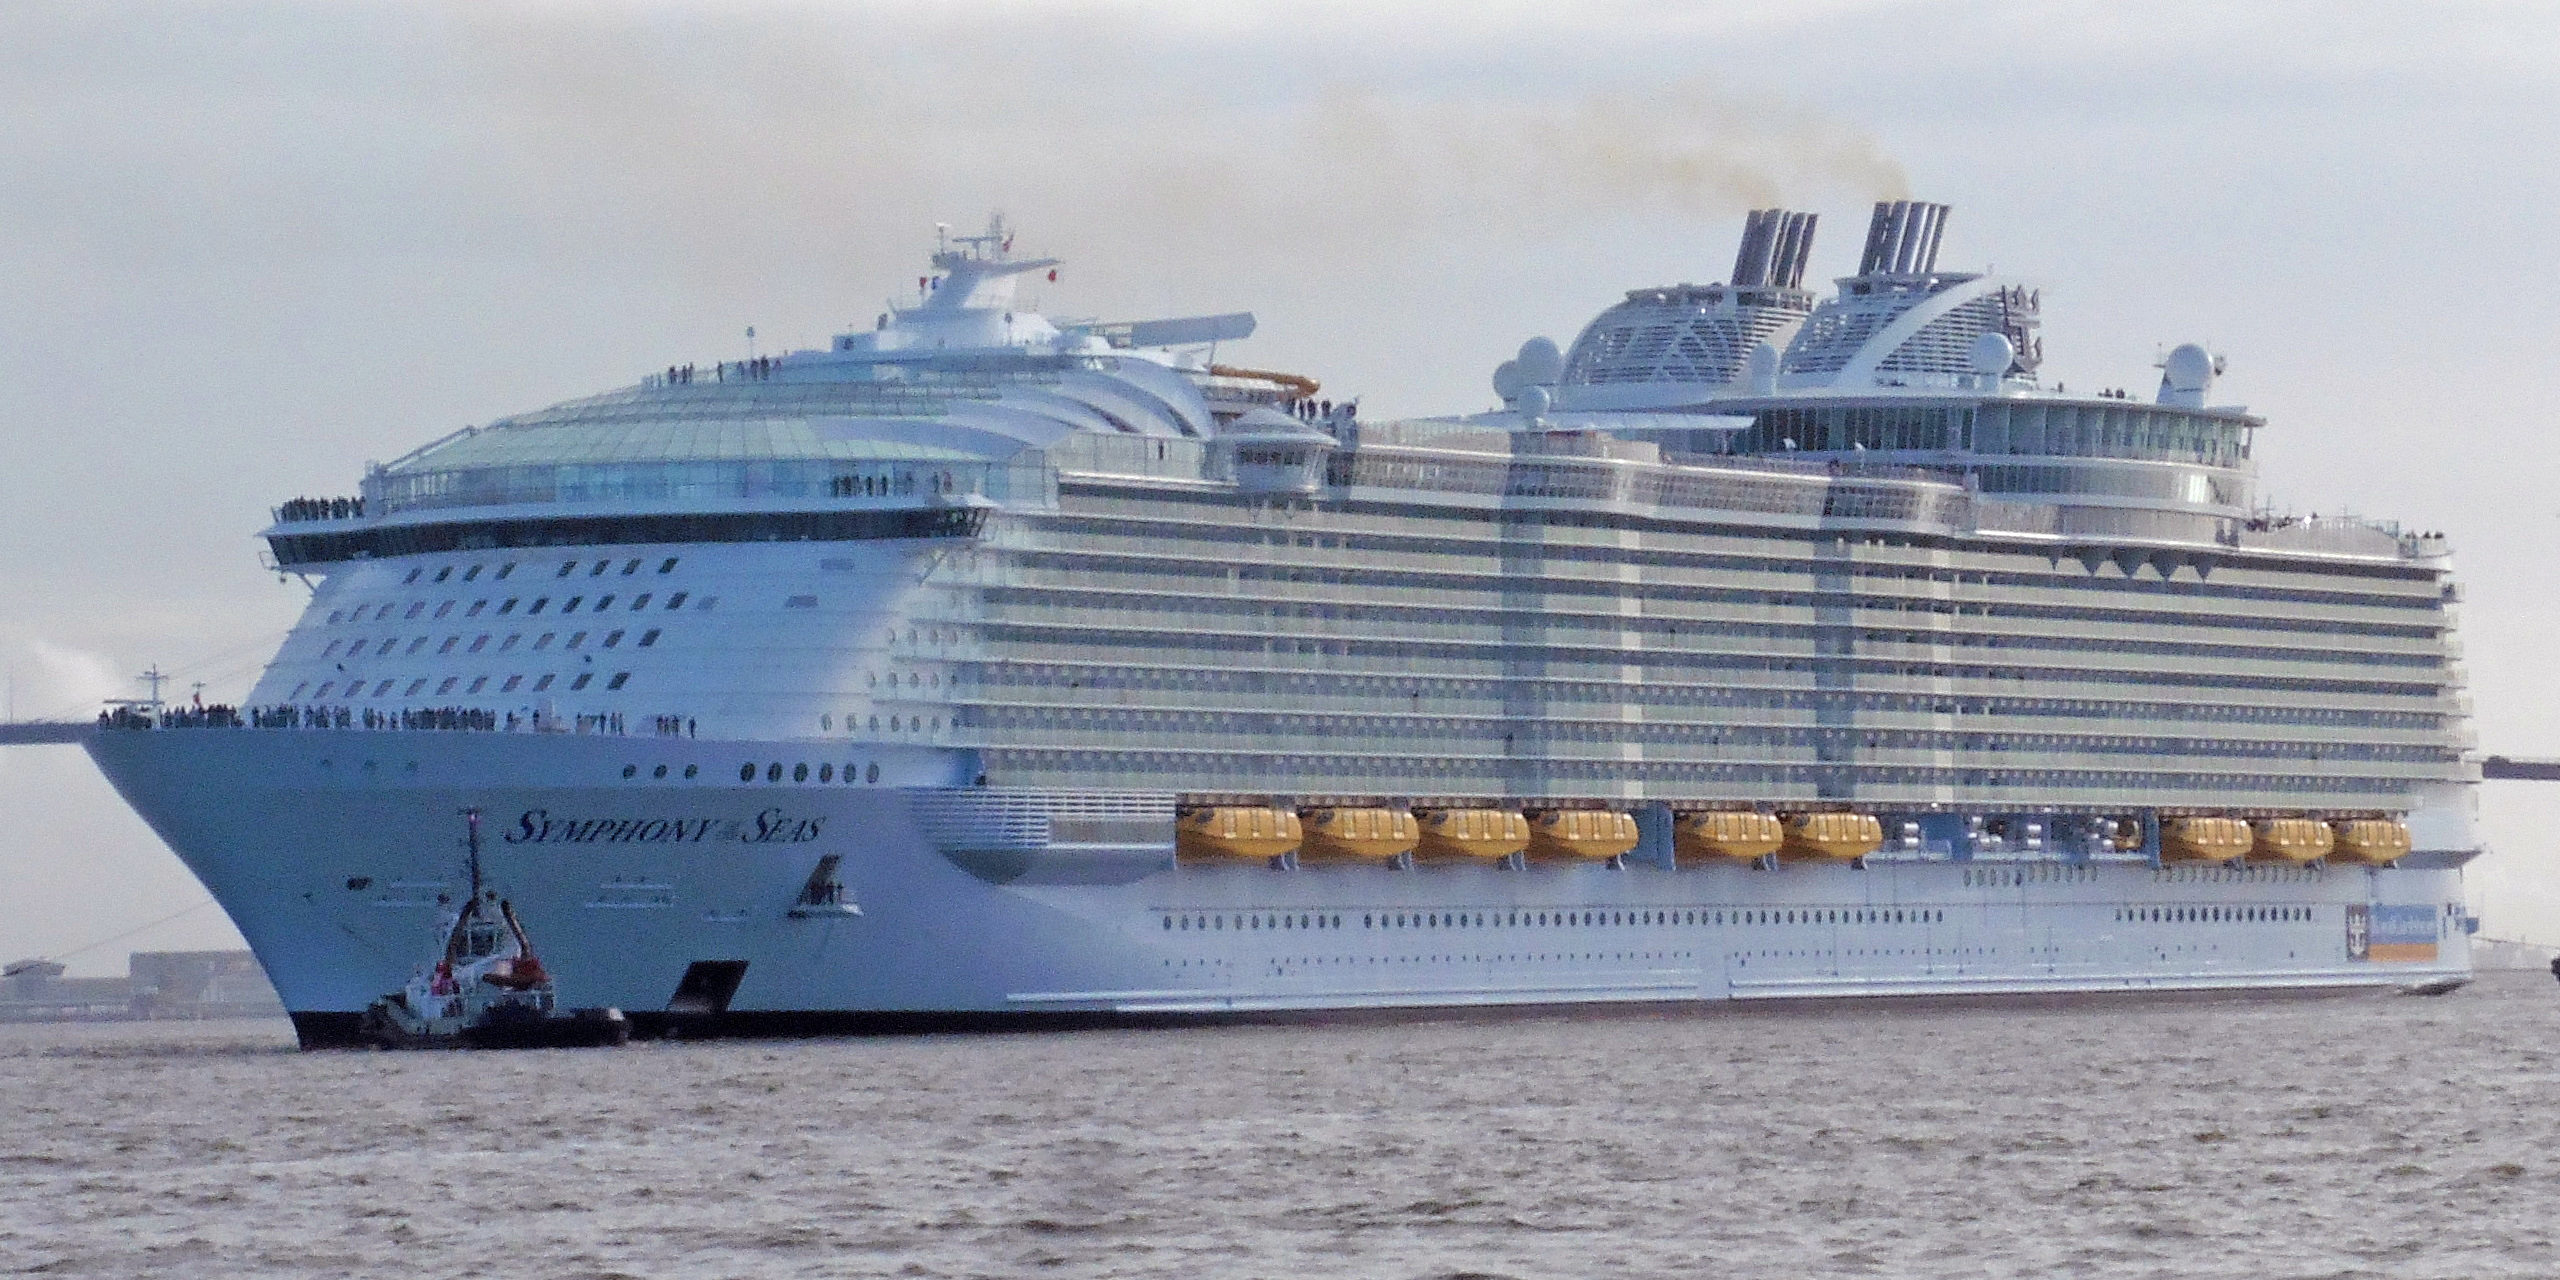 Symphony of the Seas - Wikipedia